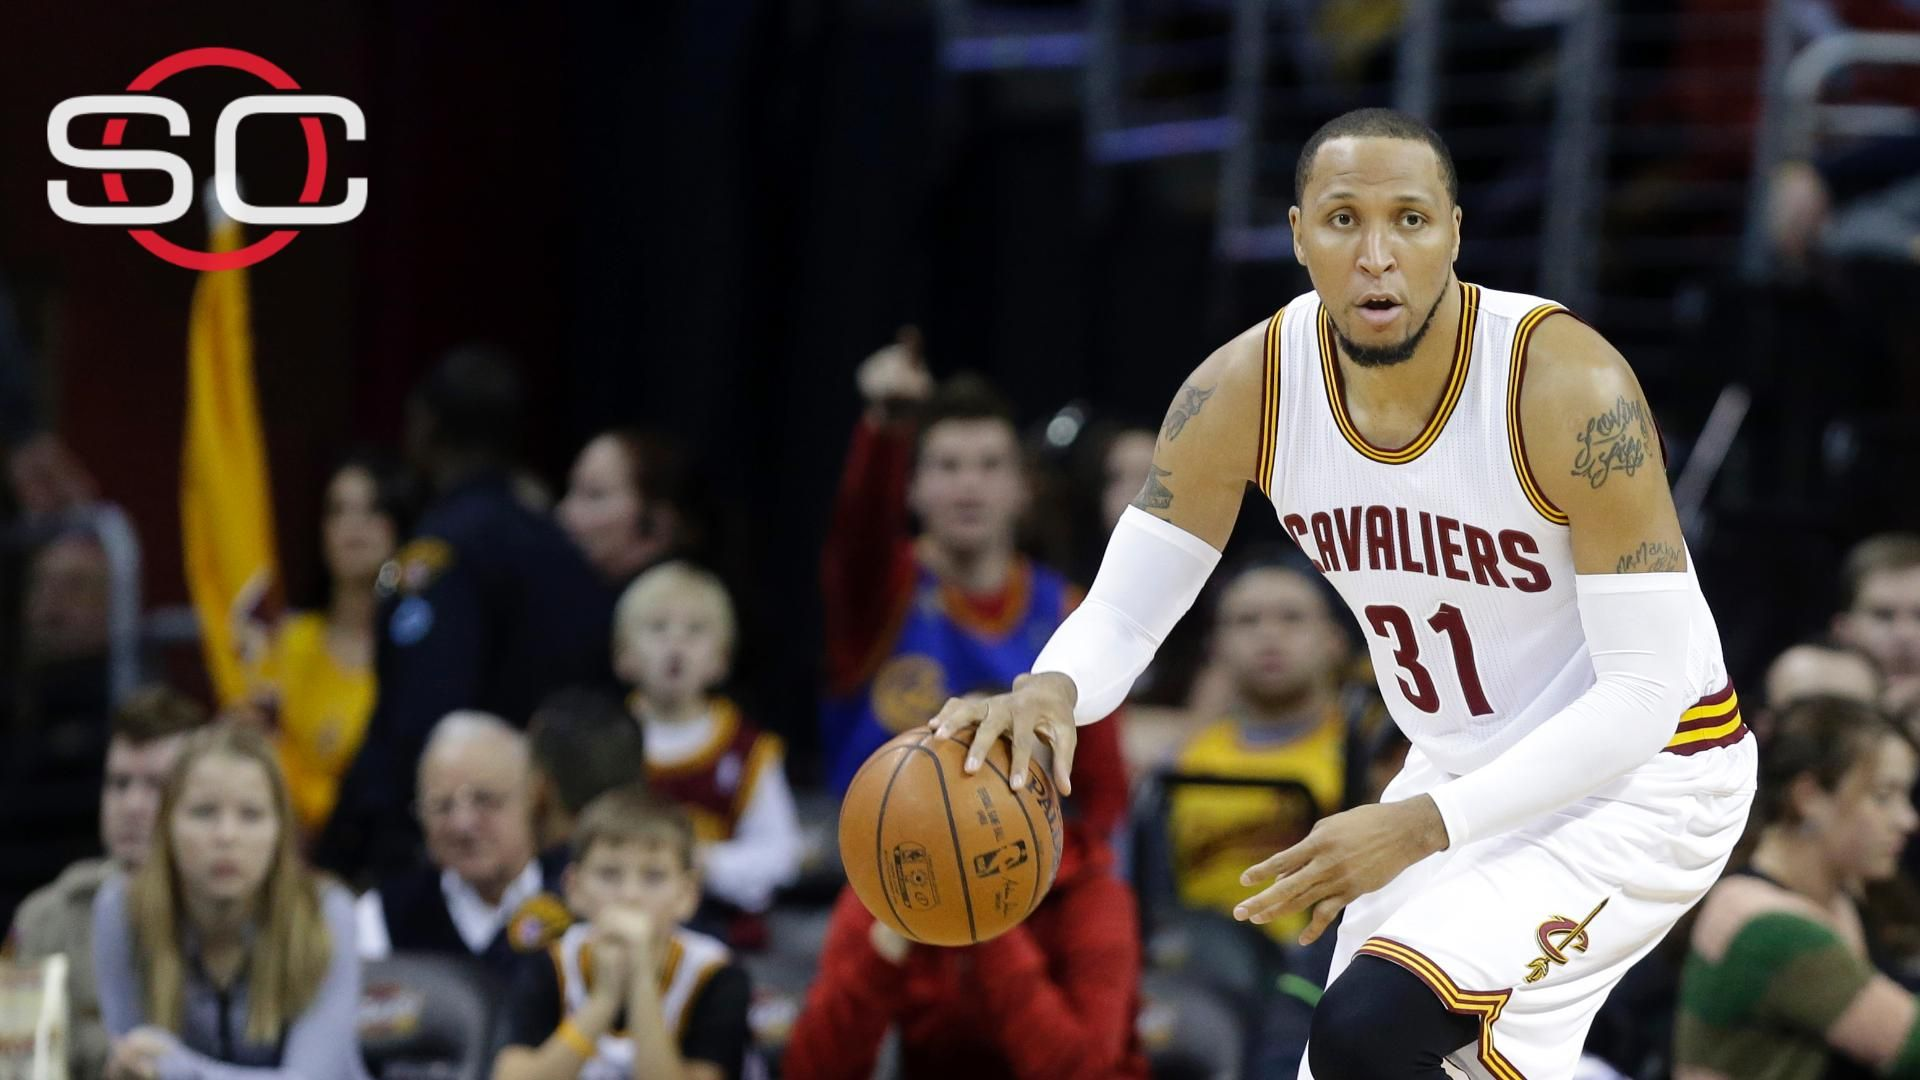 Shawn Marion retiring after 16 seasons